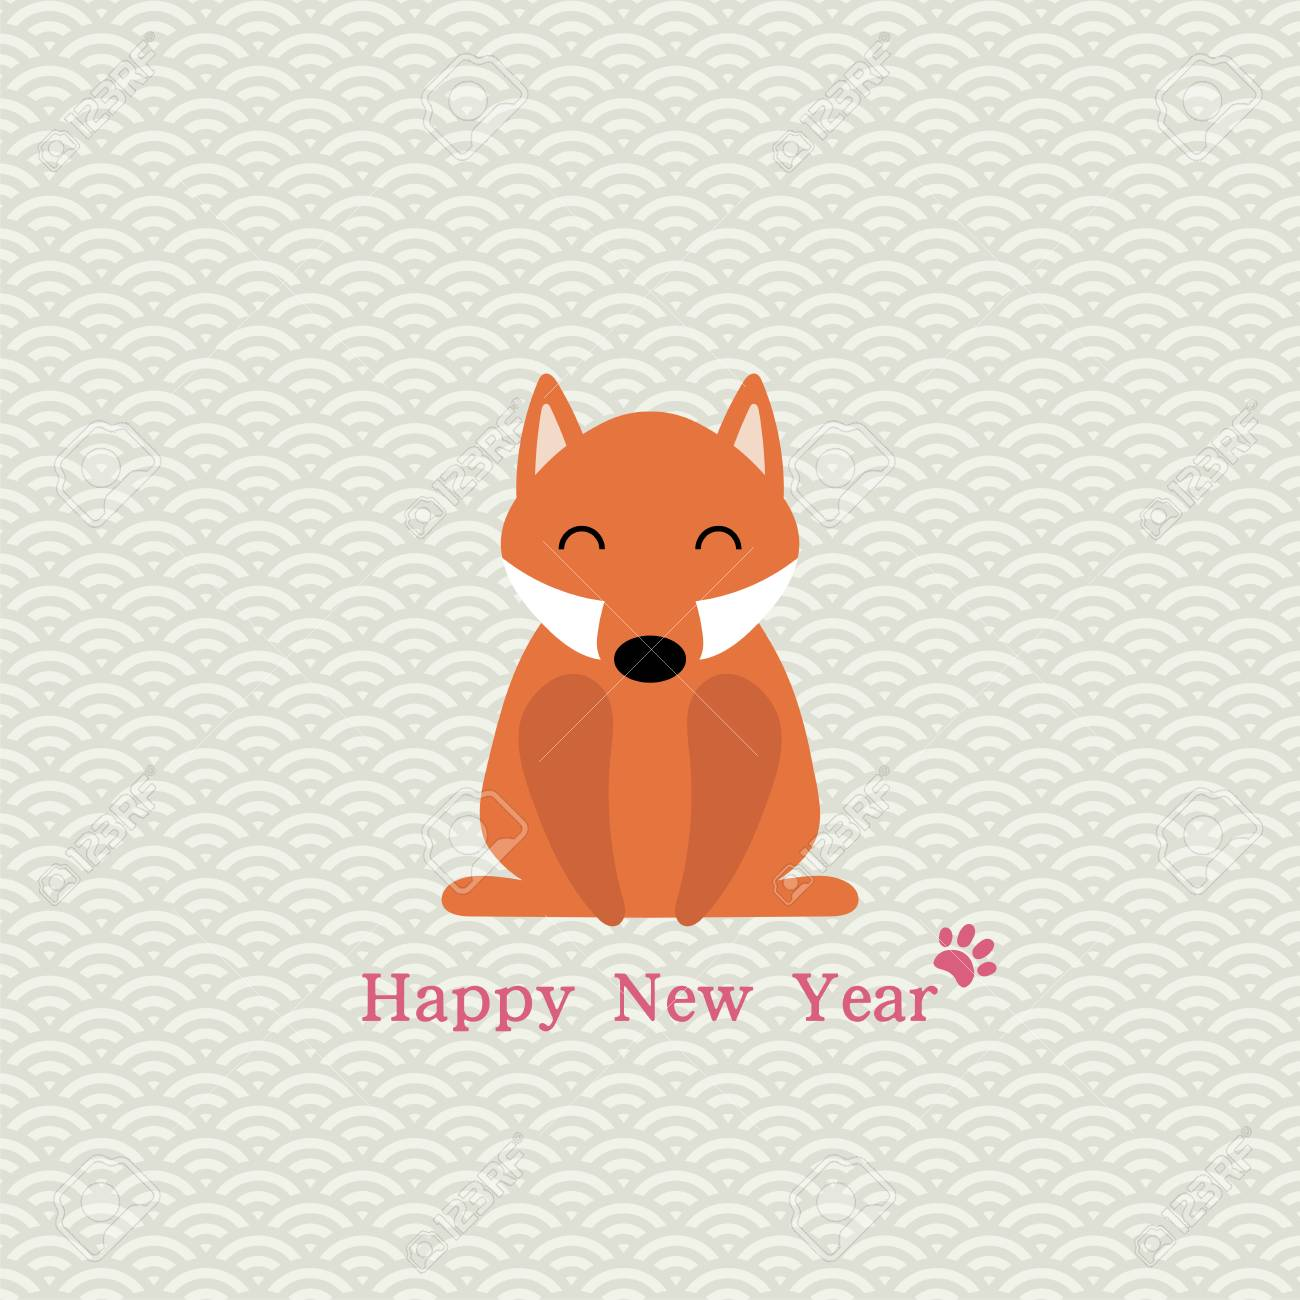 2018 Chinese New Year Minimalistic Greeting Card, Banner With Cute ...